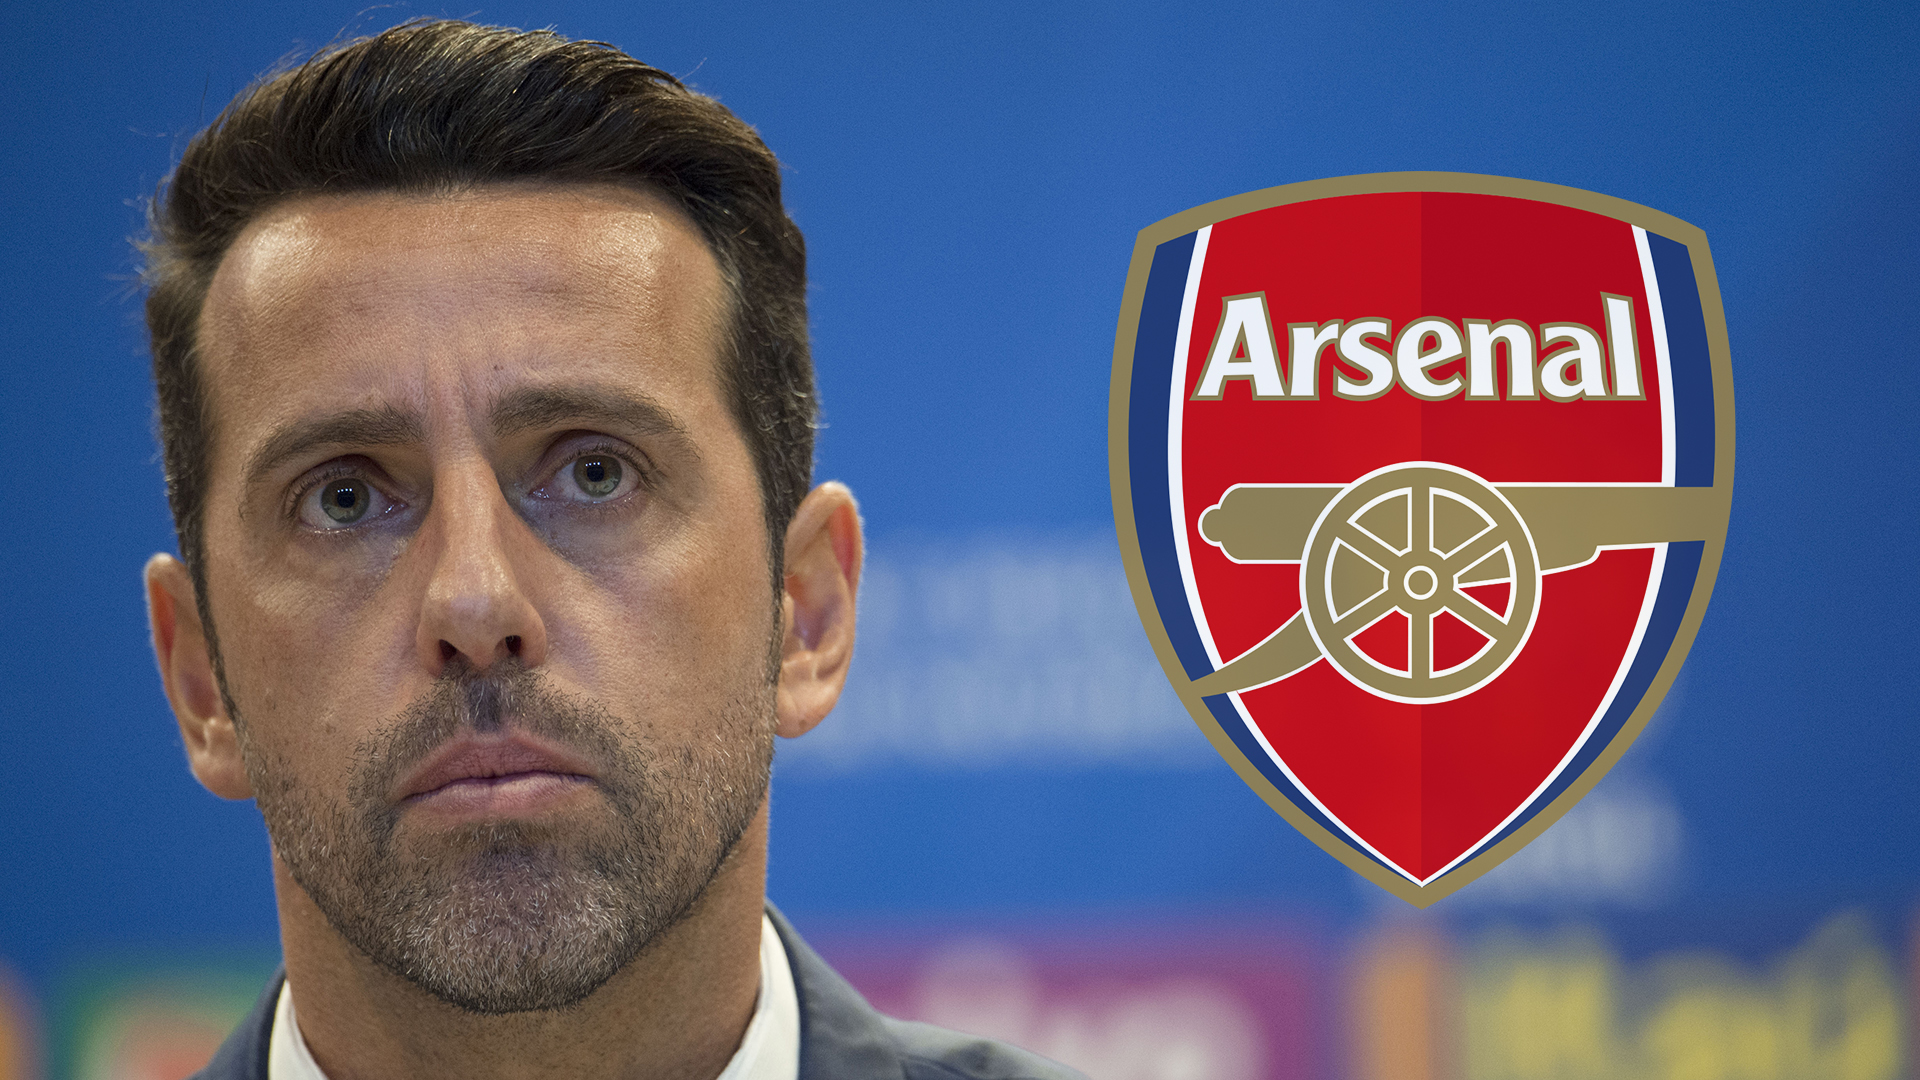 From Brazil: Official statement denies Arsenal agreement